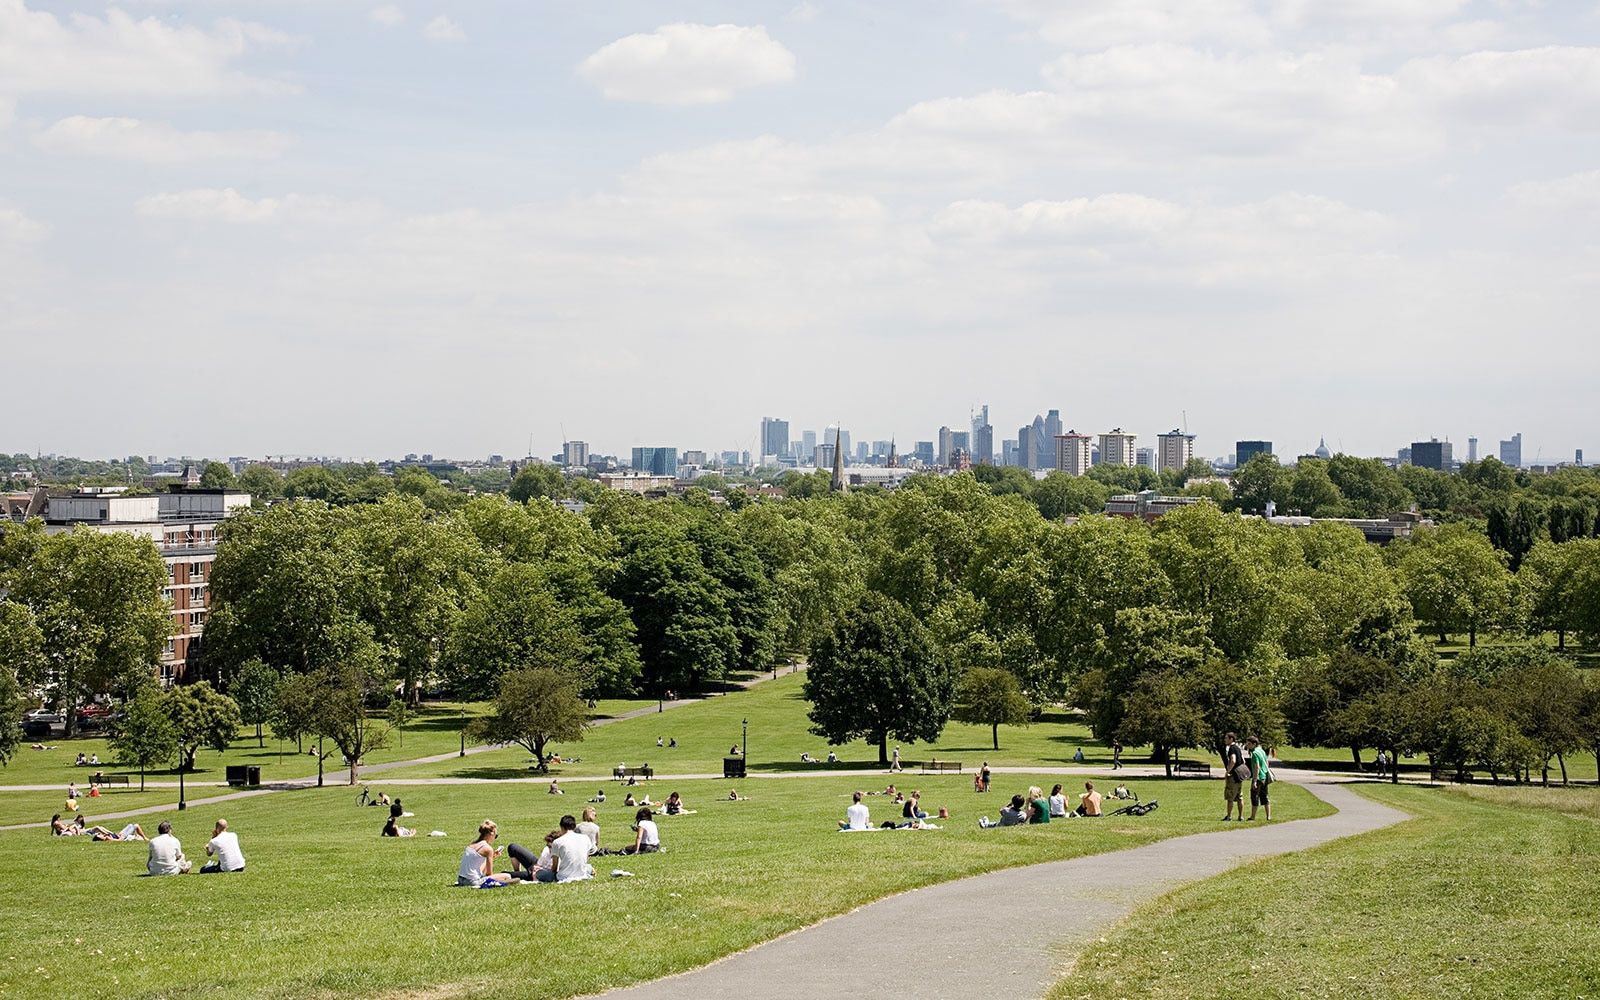 21 Things You Can Certainly Do in London That Are Free